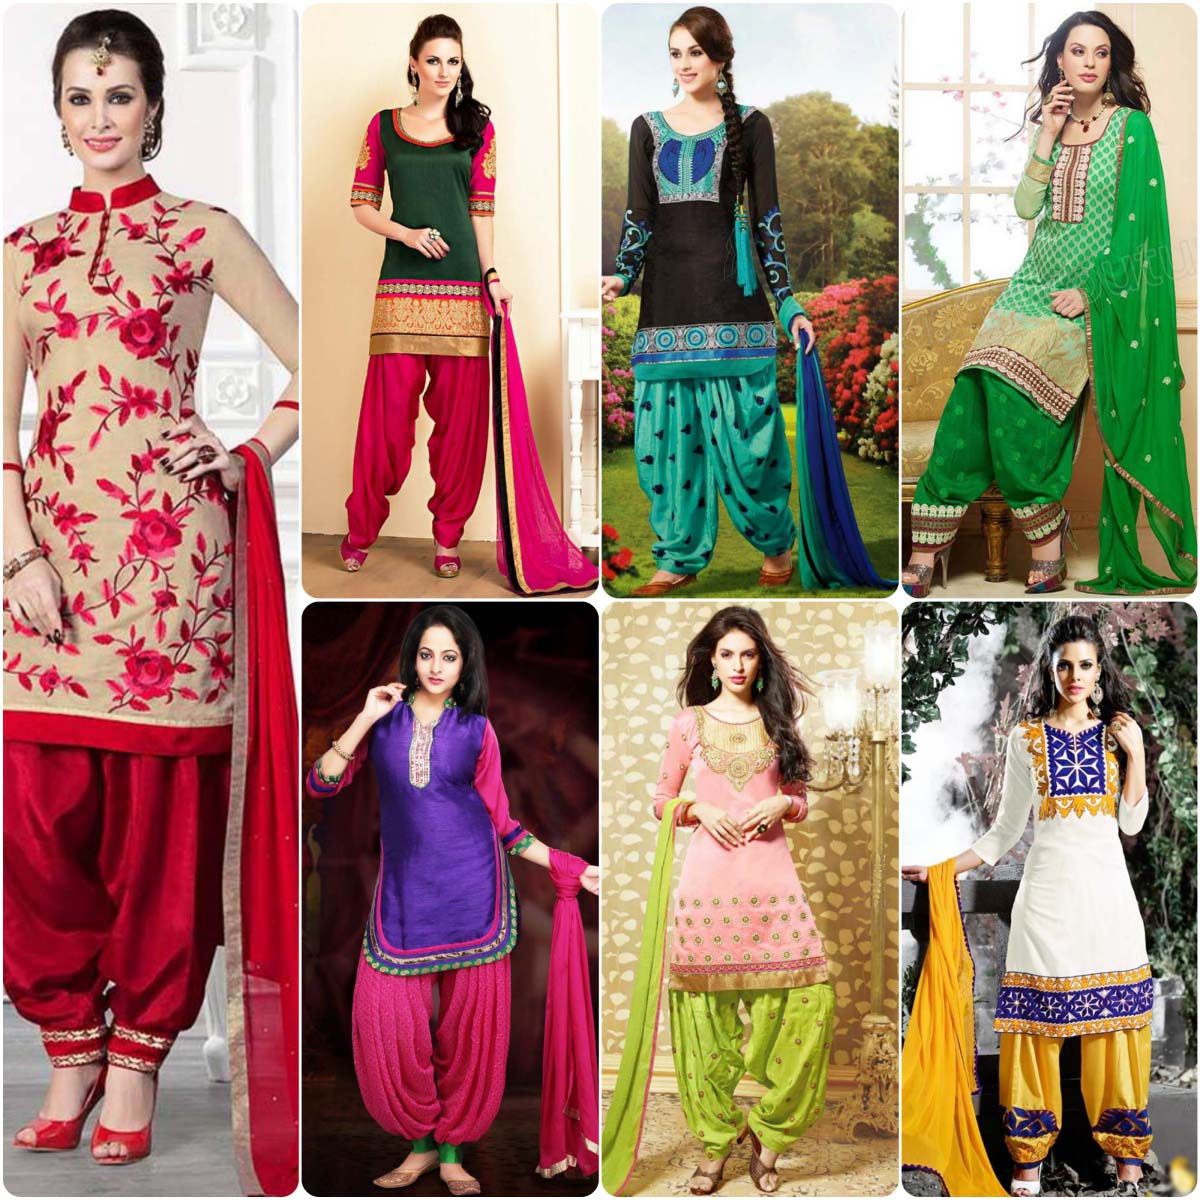 Stylish Patiala Shalwar Kameez Suits Designs | Stylo Planet